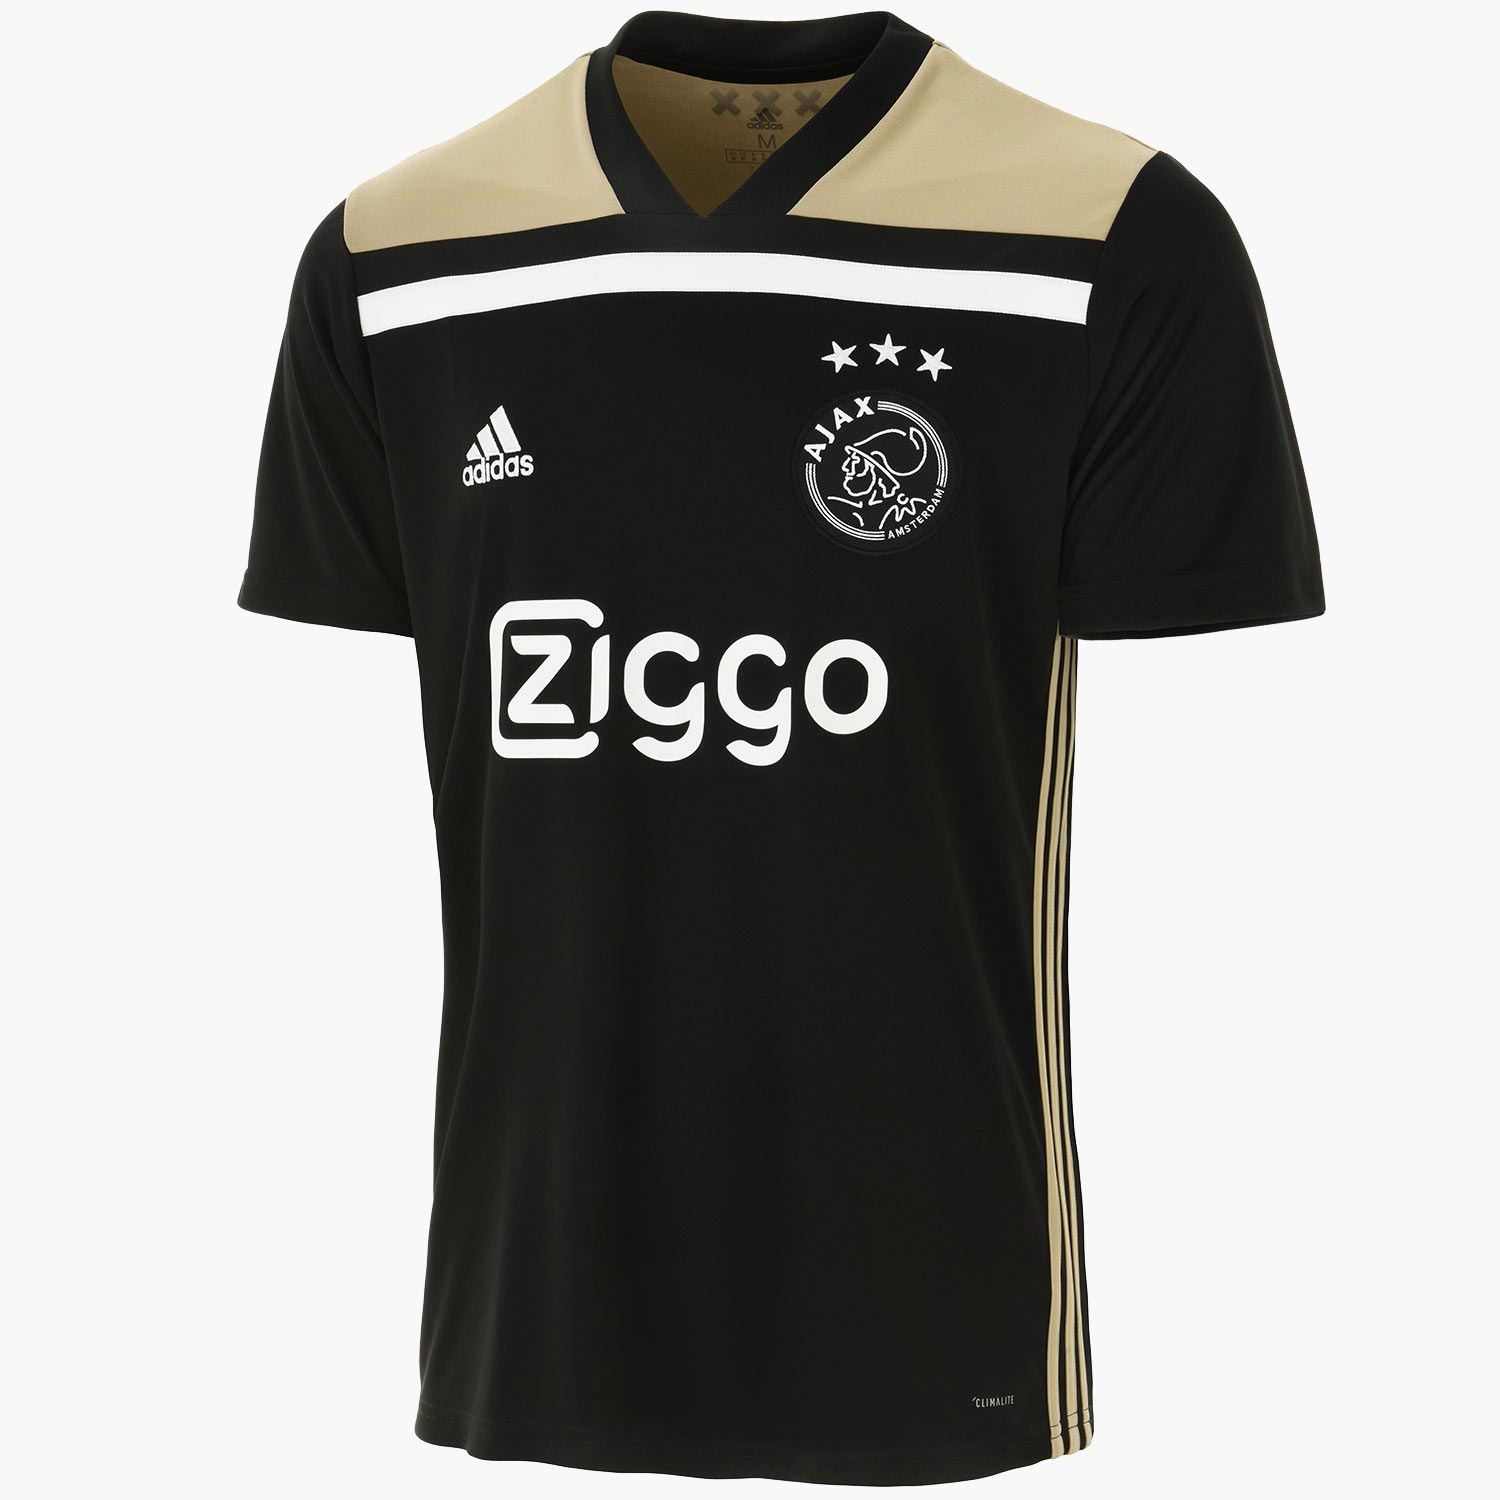 ajax-18-19-away-kit%2B%25283%2529.jpg